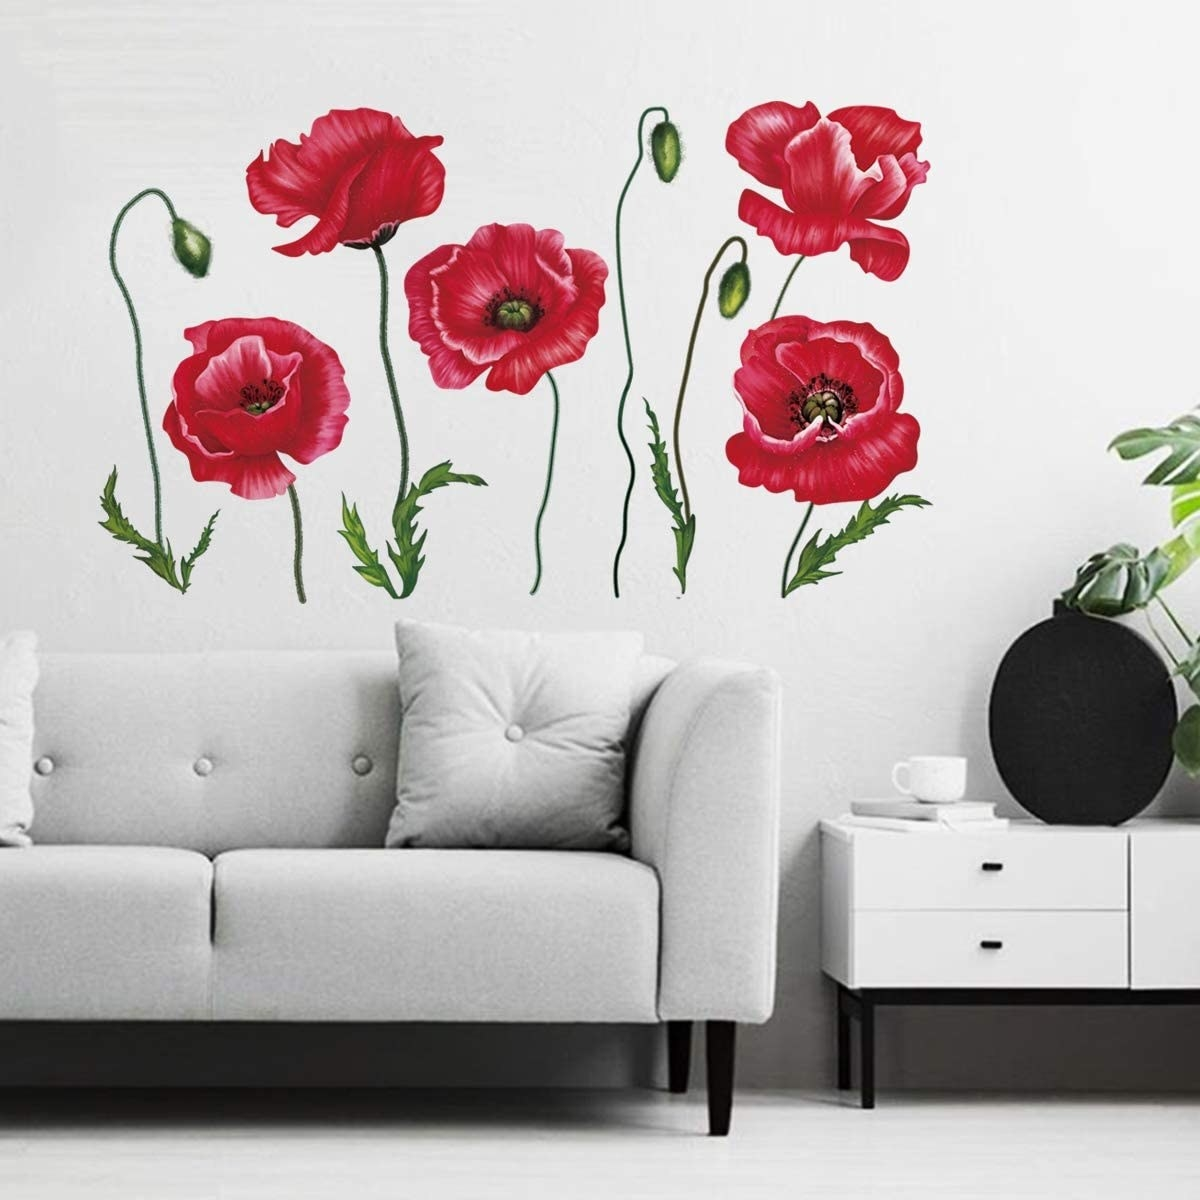 Wall decals of poppies on a wall in a room with a couch and a coffee table